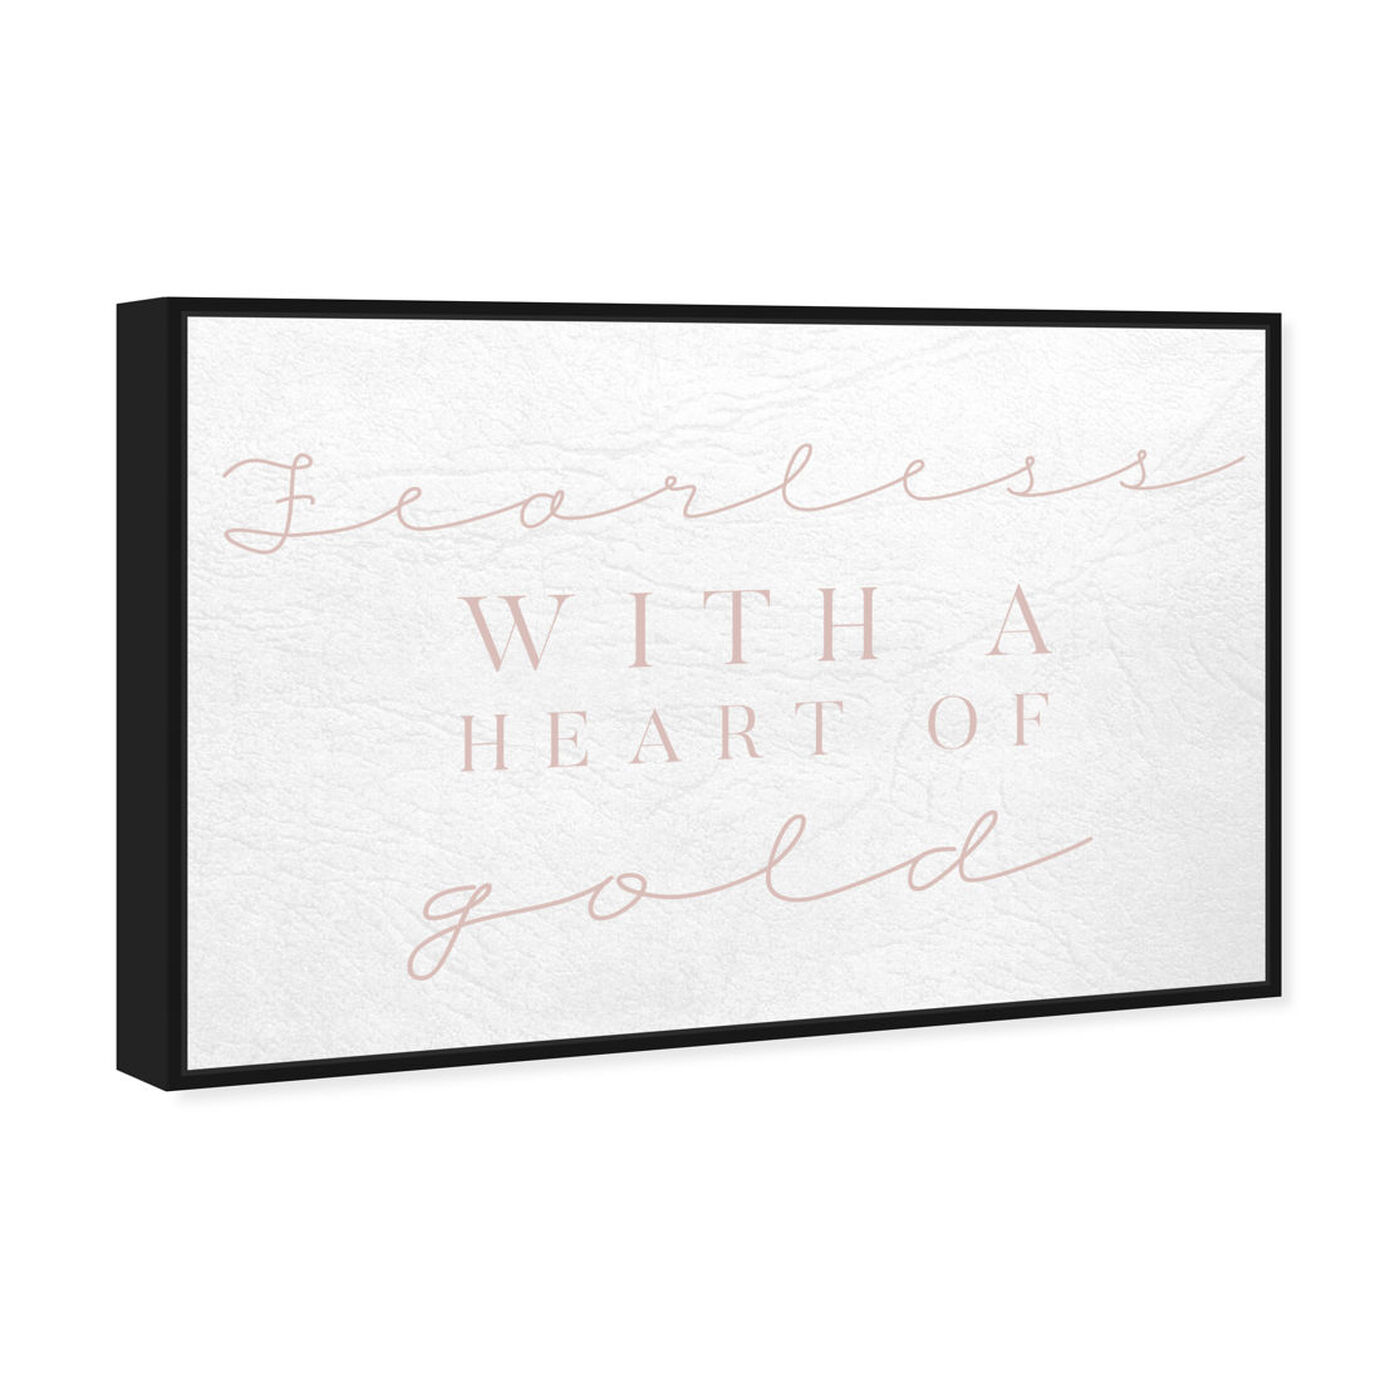 Angled view of Fearless Blush featuring typography and quotes and love quotes and sayings art.